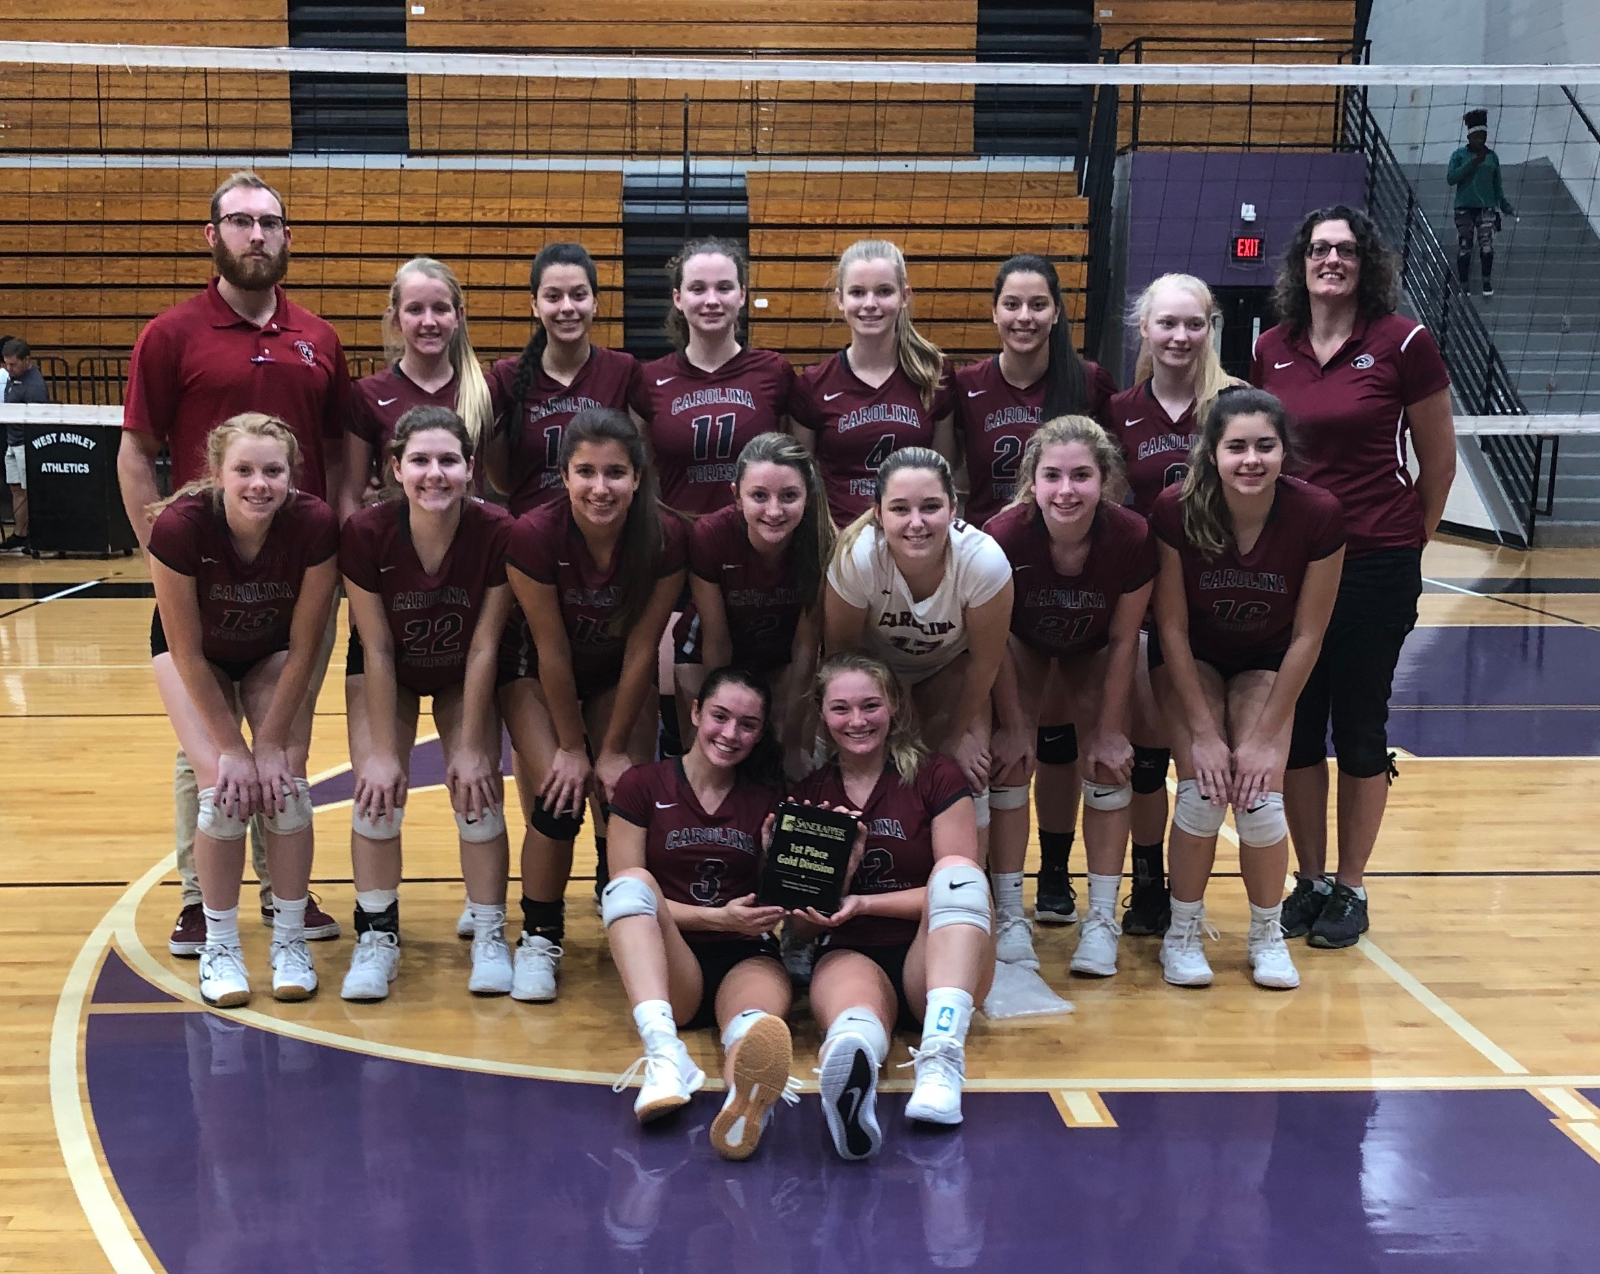 Panthers Volleyball – 2019 Region VI Champions